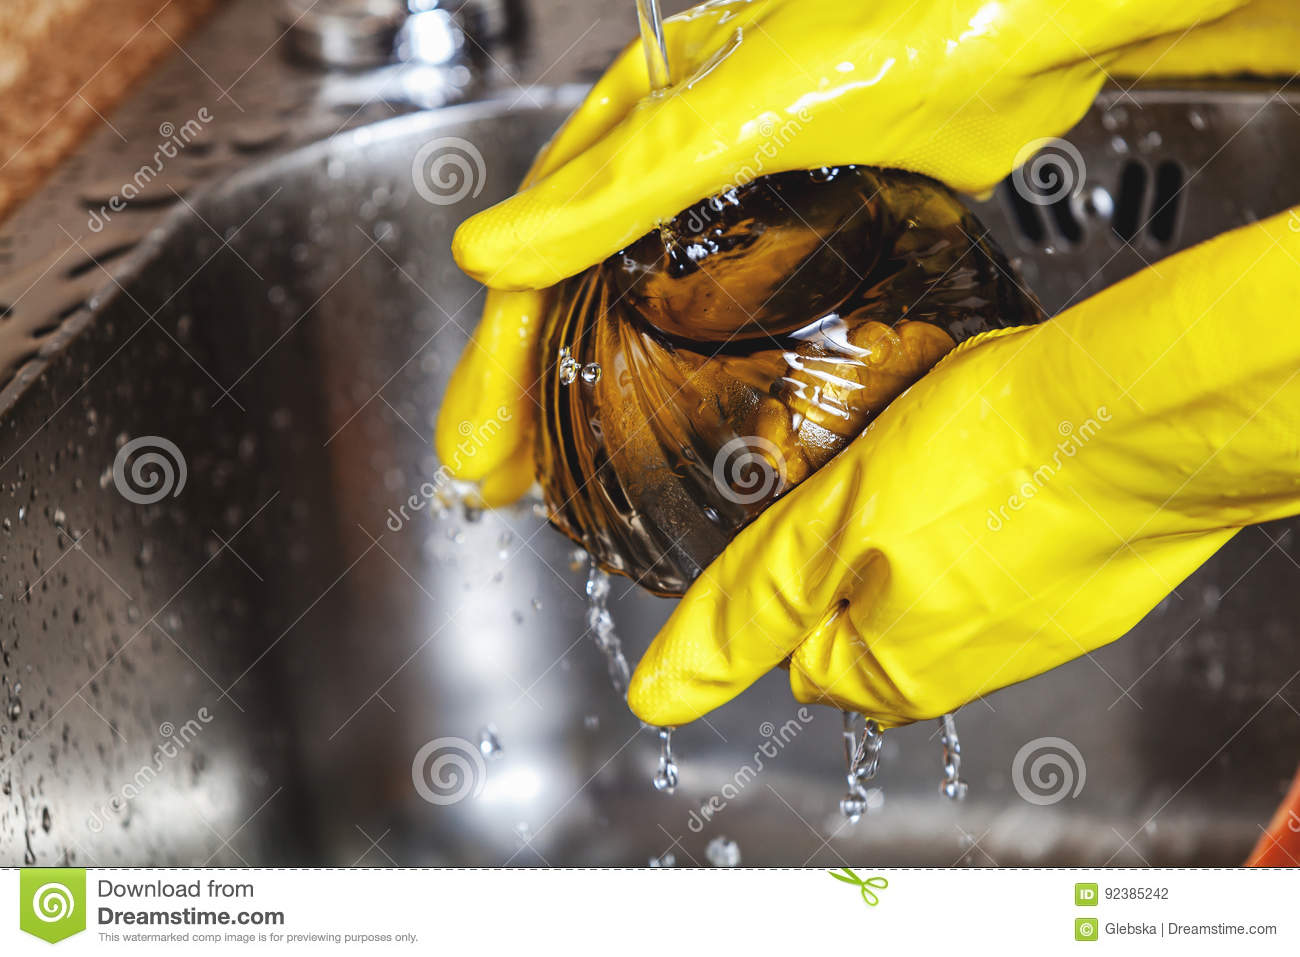 Hands In Yellow Rubber Gloves Wash Spoon Glass Bowl Stock